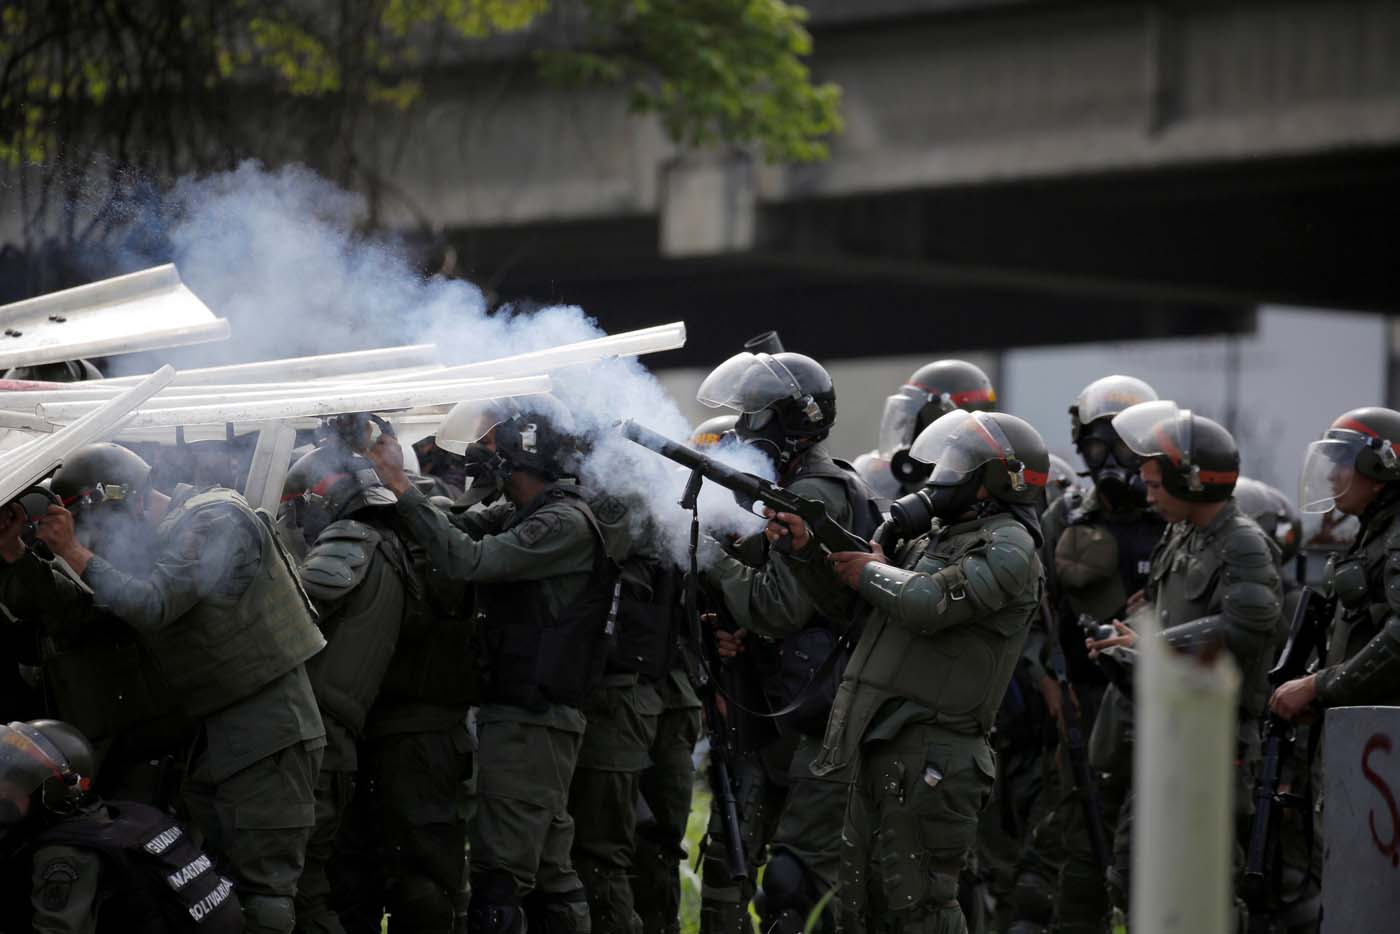 Riot security forces take cover while clashing with demonstrators rallying against President Nicolas Maduro in Caracas, Venezuela, May 24, 2017. REUTERS/Carlos Barria